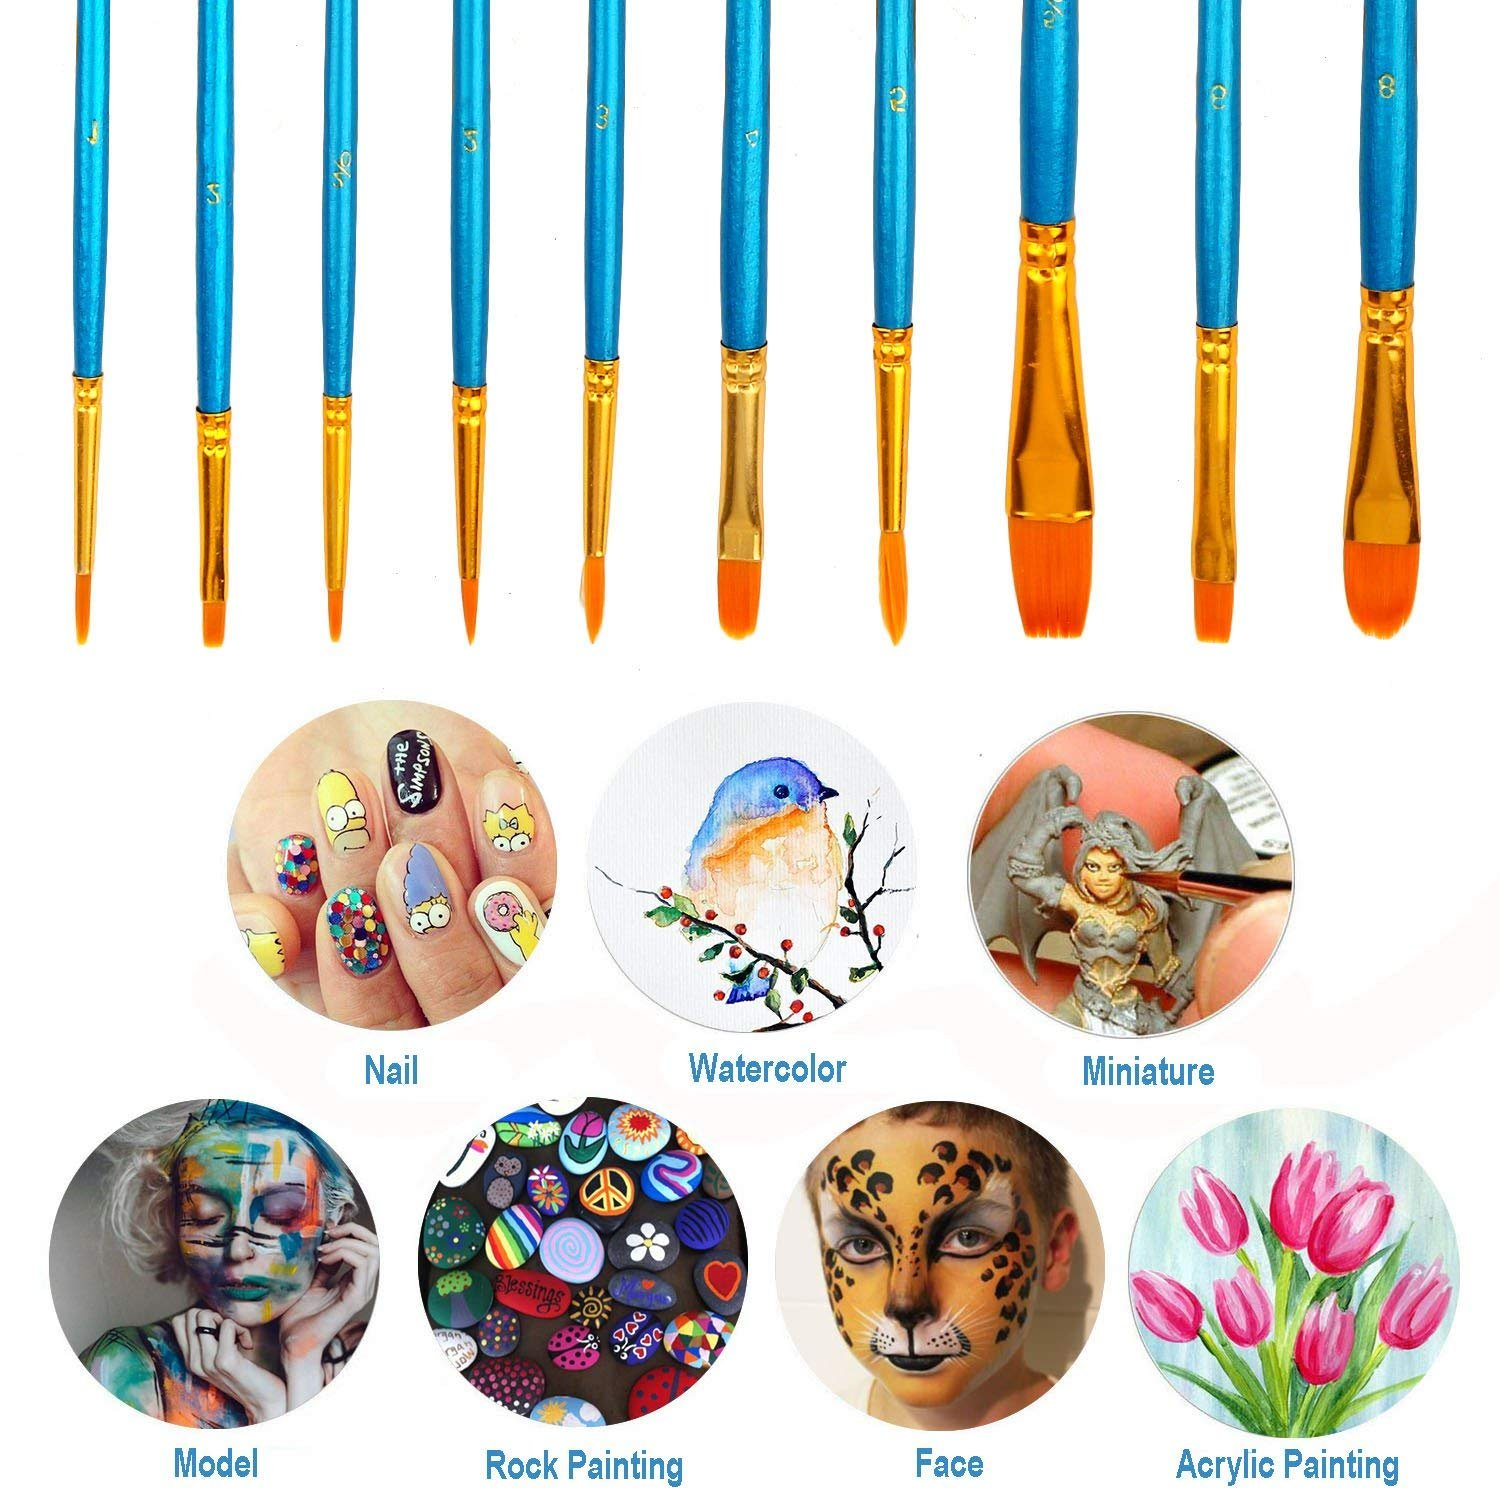 Soucolor Paint Brush Set 10 pcs Nylon Hair Brushes for Acrylic Oil Watercolor Painting Artist Professional Painting Kits for School Supplies Projects